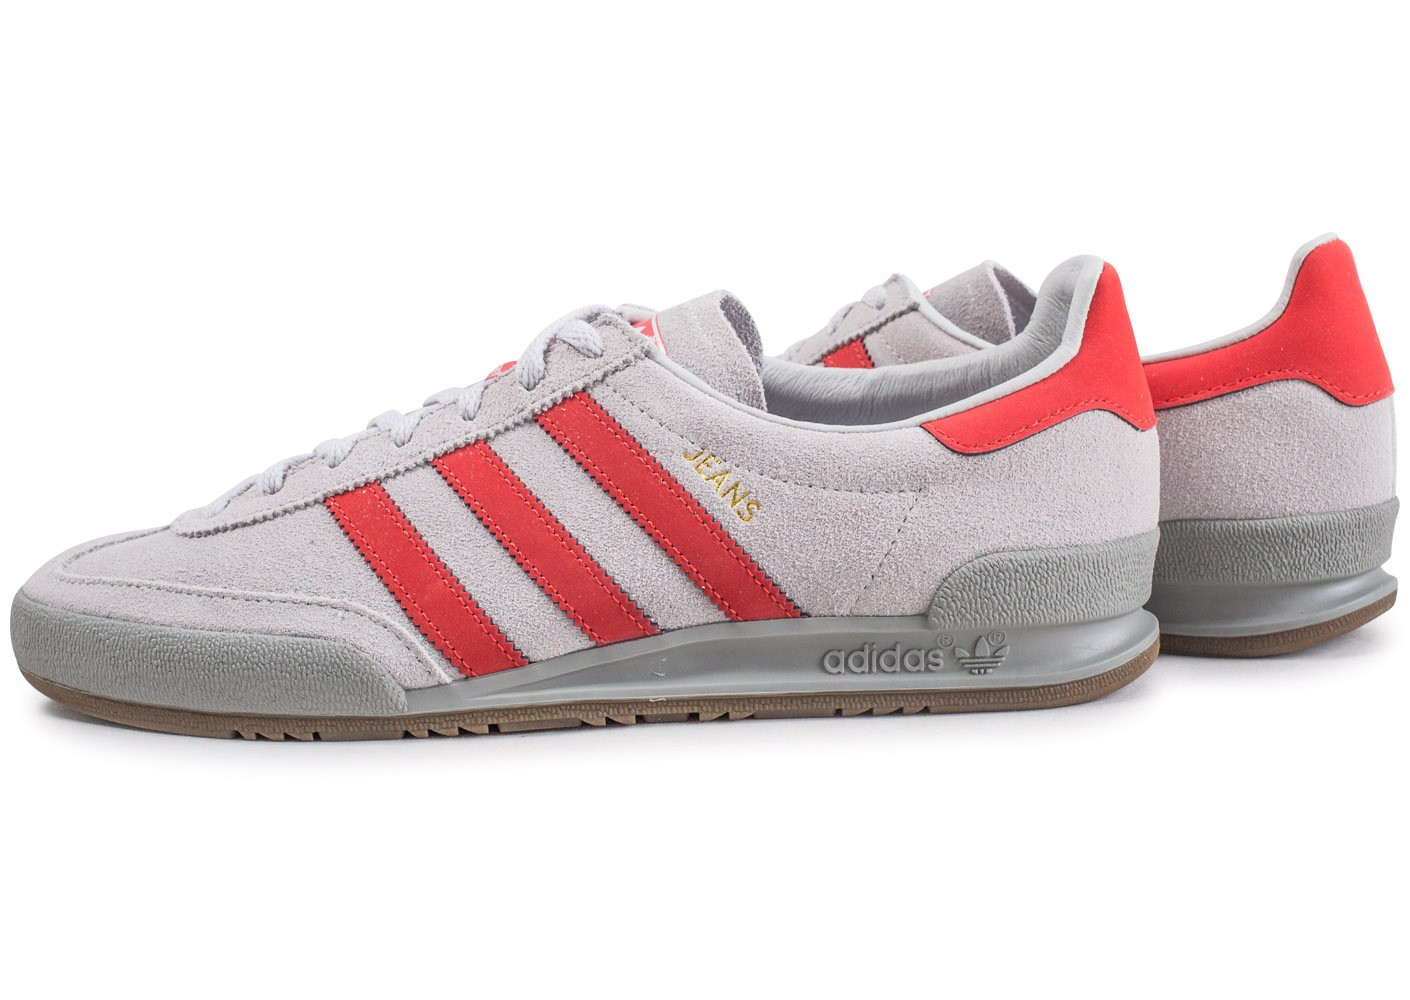 adidas jeans chaussures grises